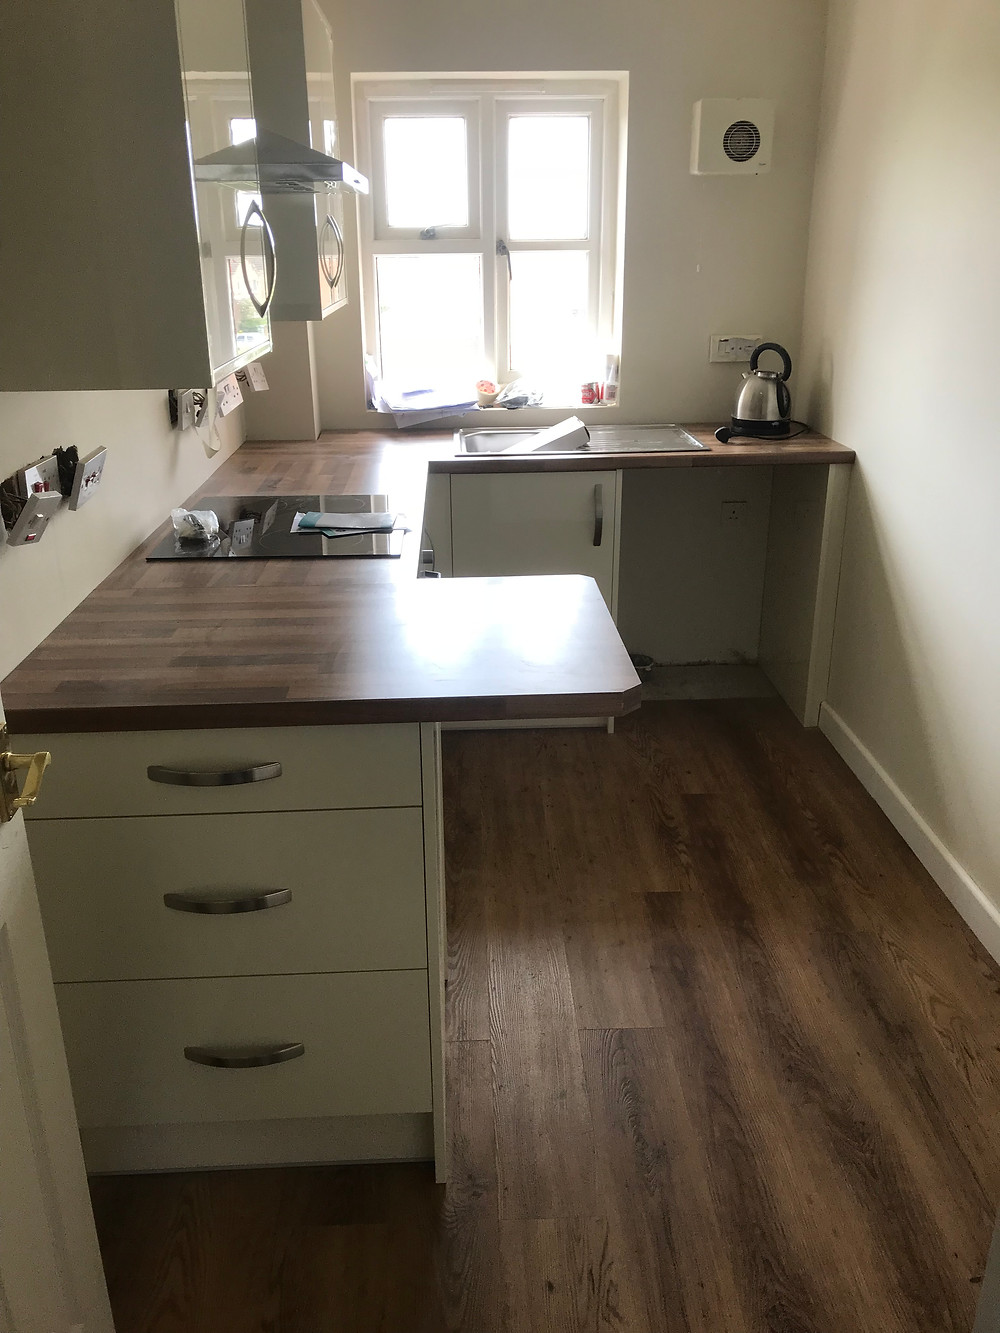 Wren Kitchen fitted by SPB Carpentry and Joinery